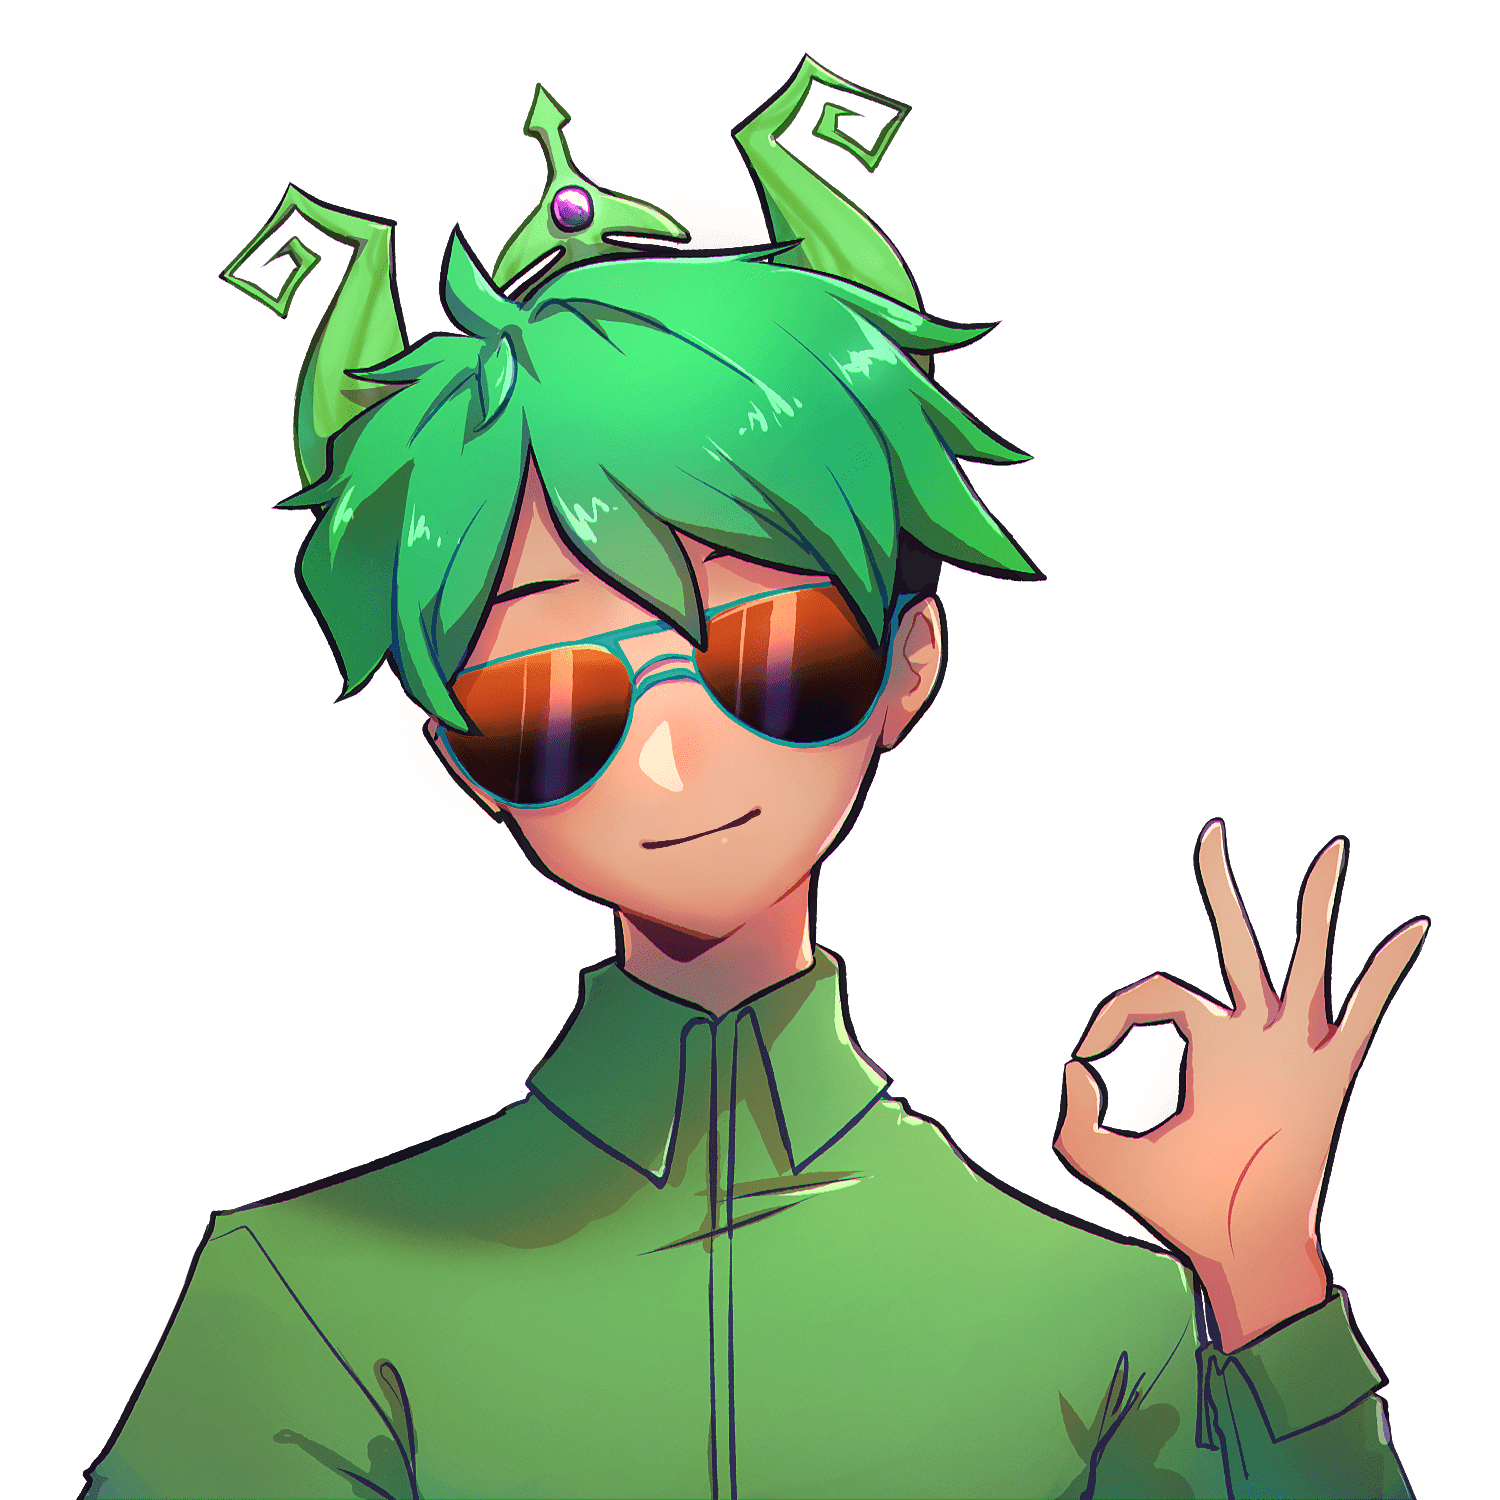 Roblox avatar wearing green collectible items